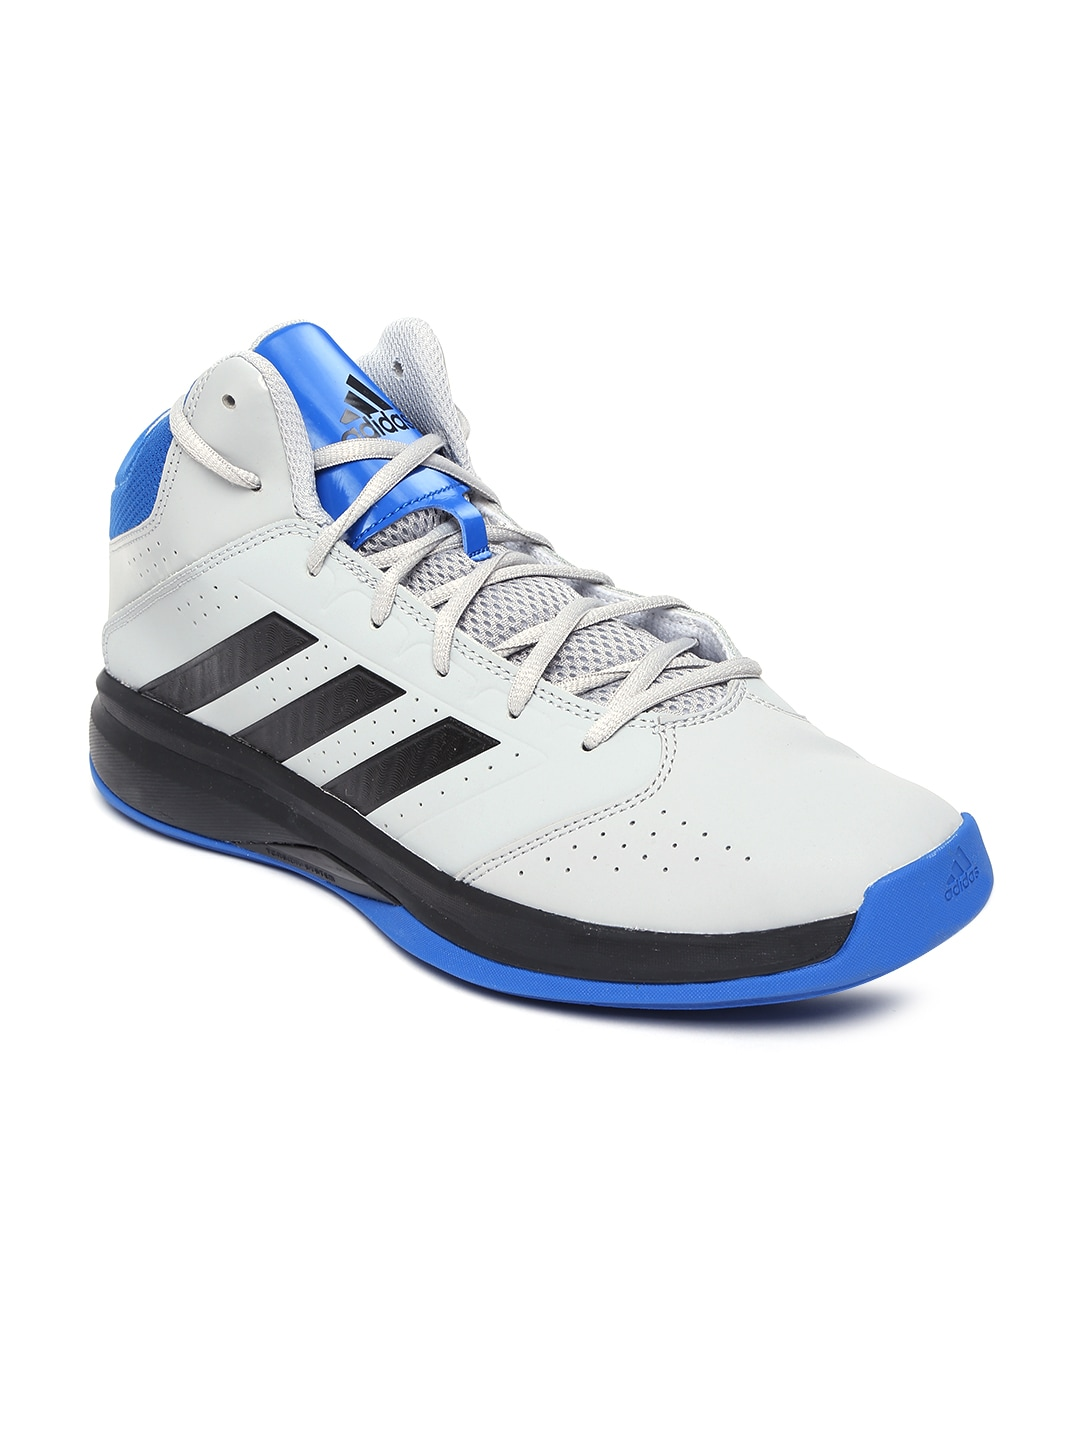 Adidas c75912 Men Grey Isolation 2 Basketball Shoes- Price in India